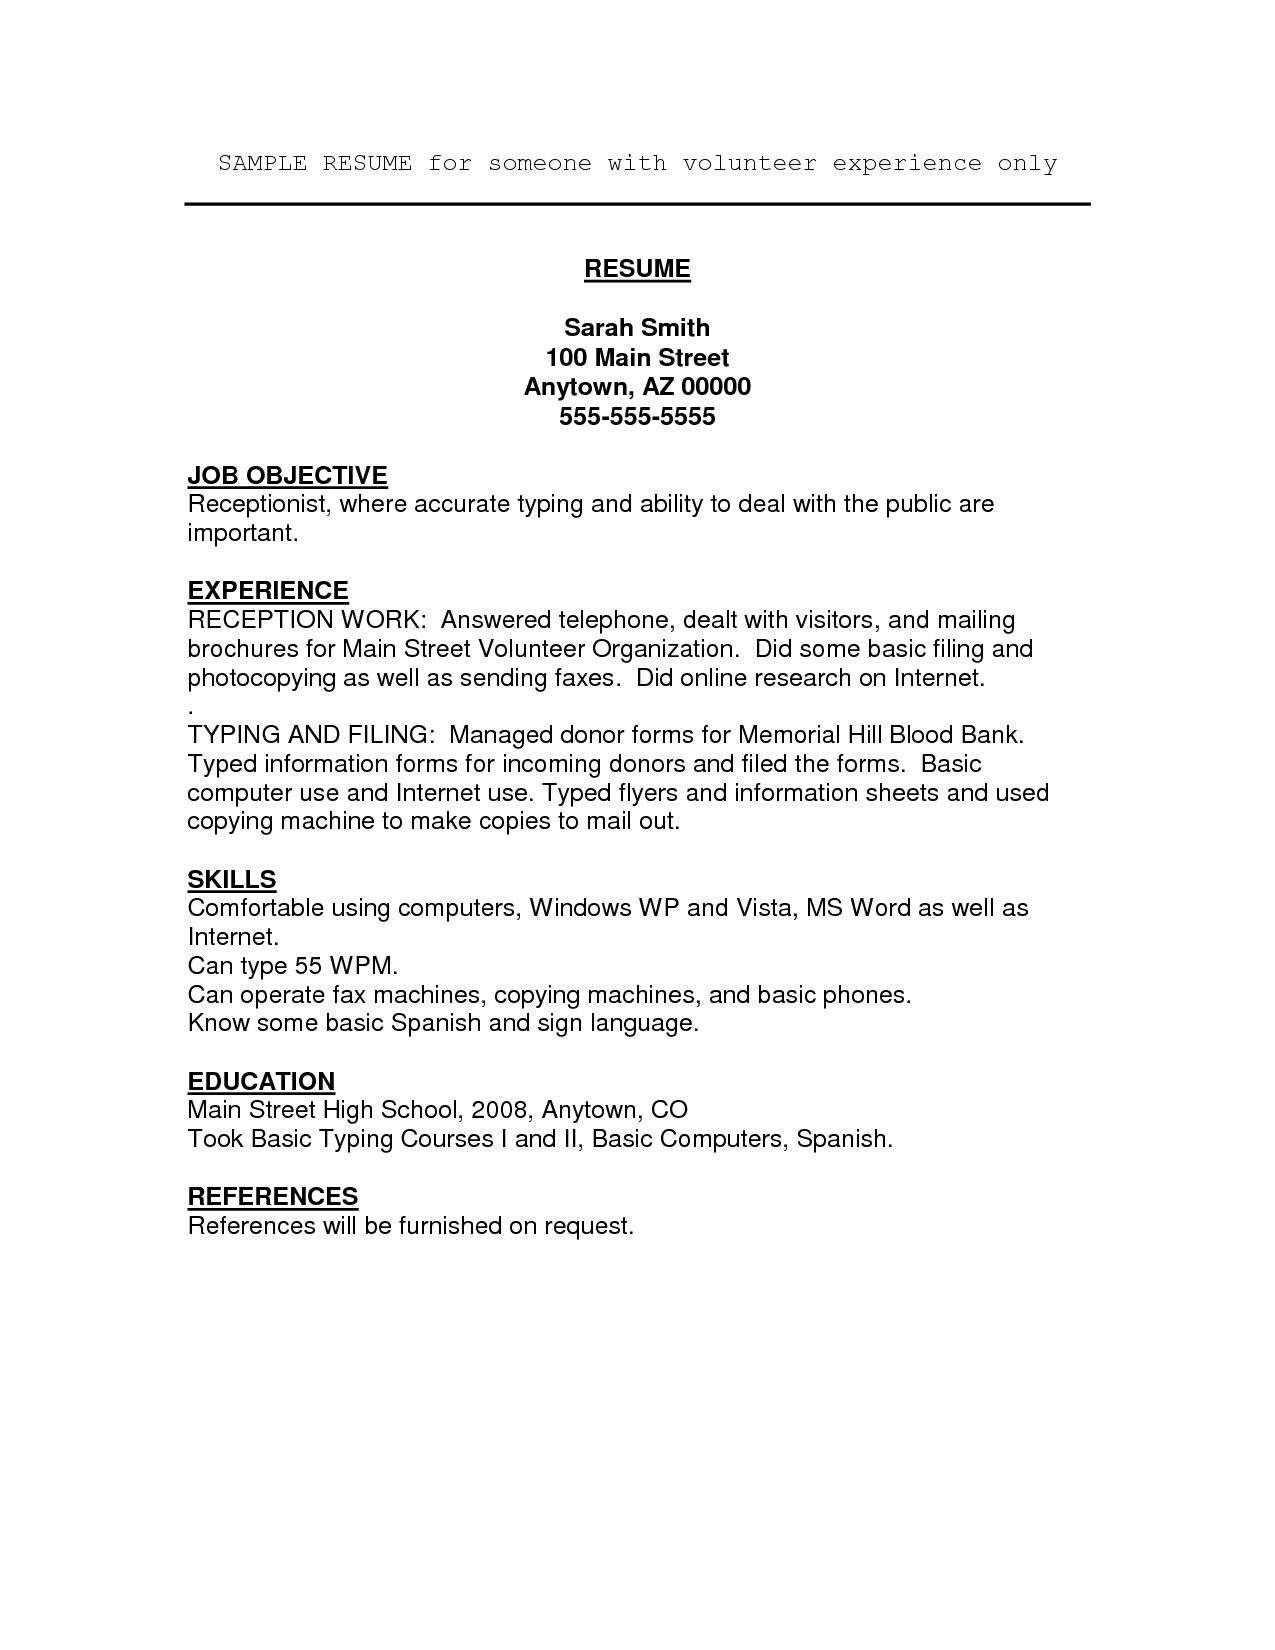 Work Resume Samples Job Resume Volunteer Experience  Httpwwwresumecareerjob